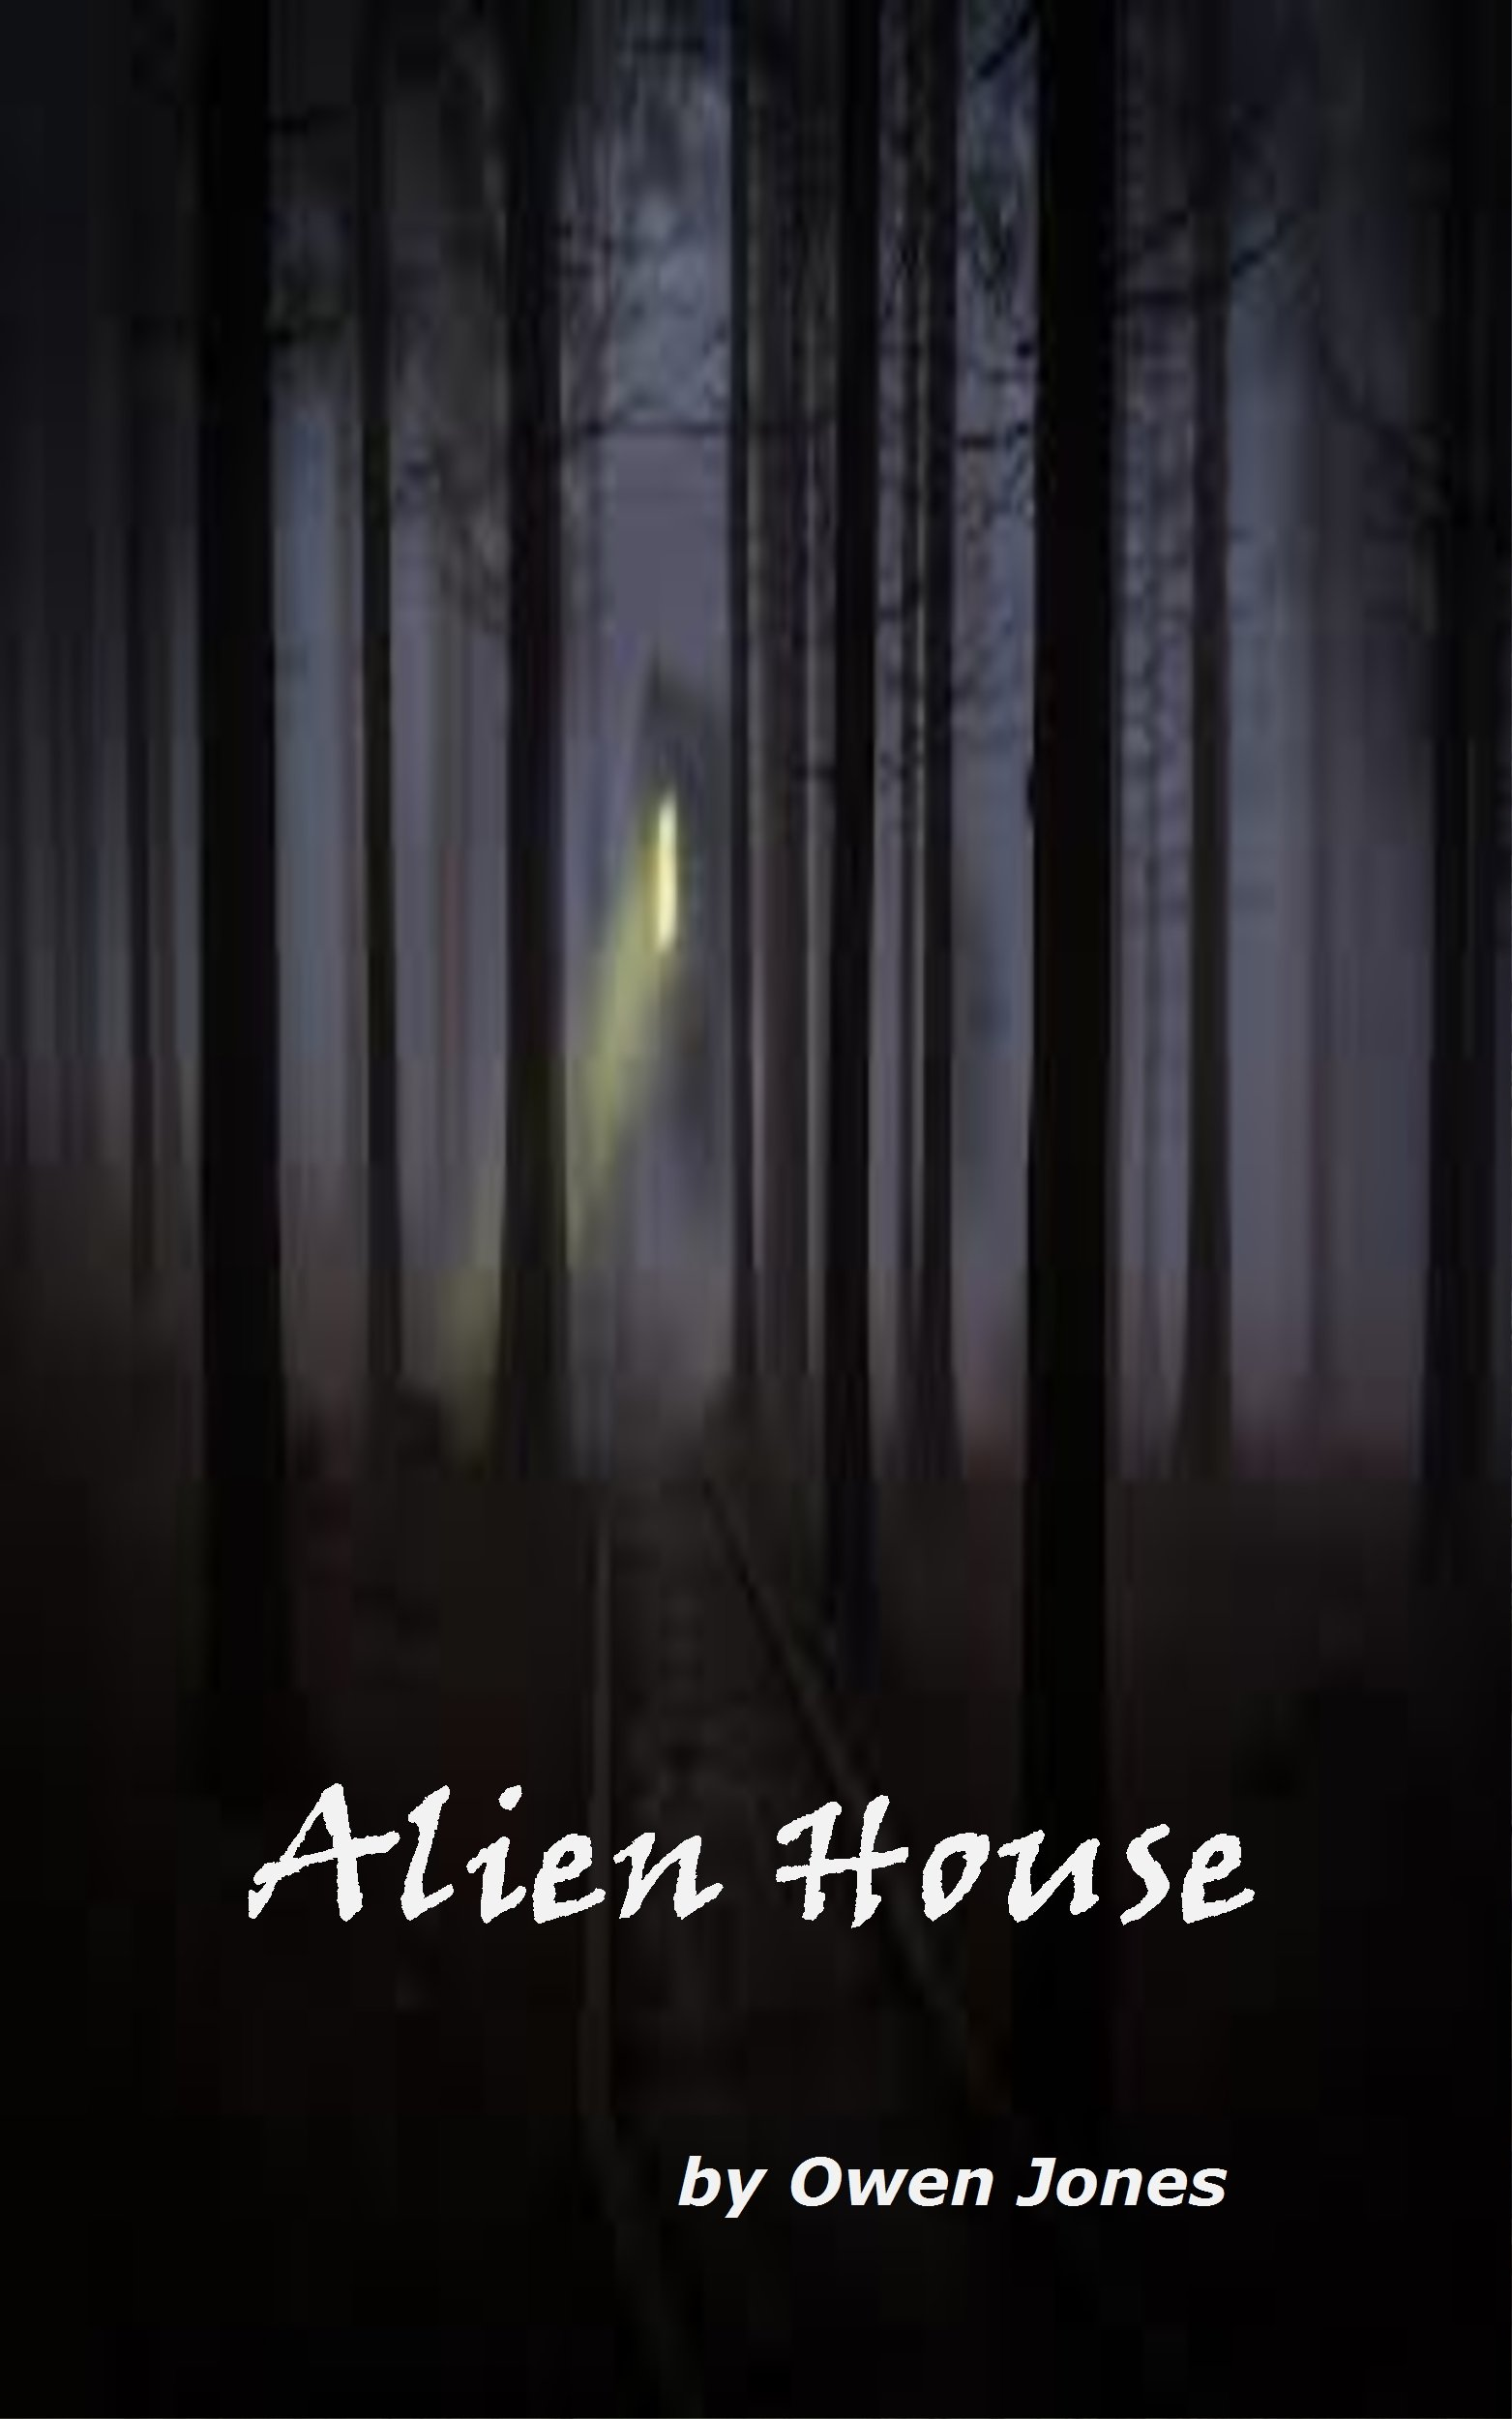 The Alien House